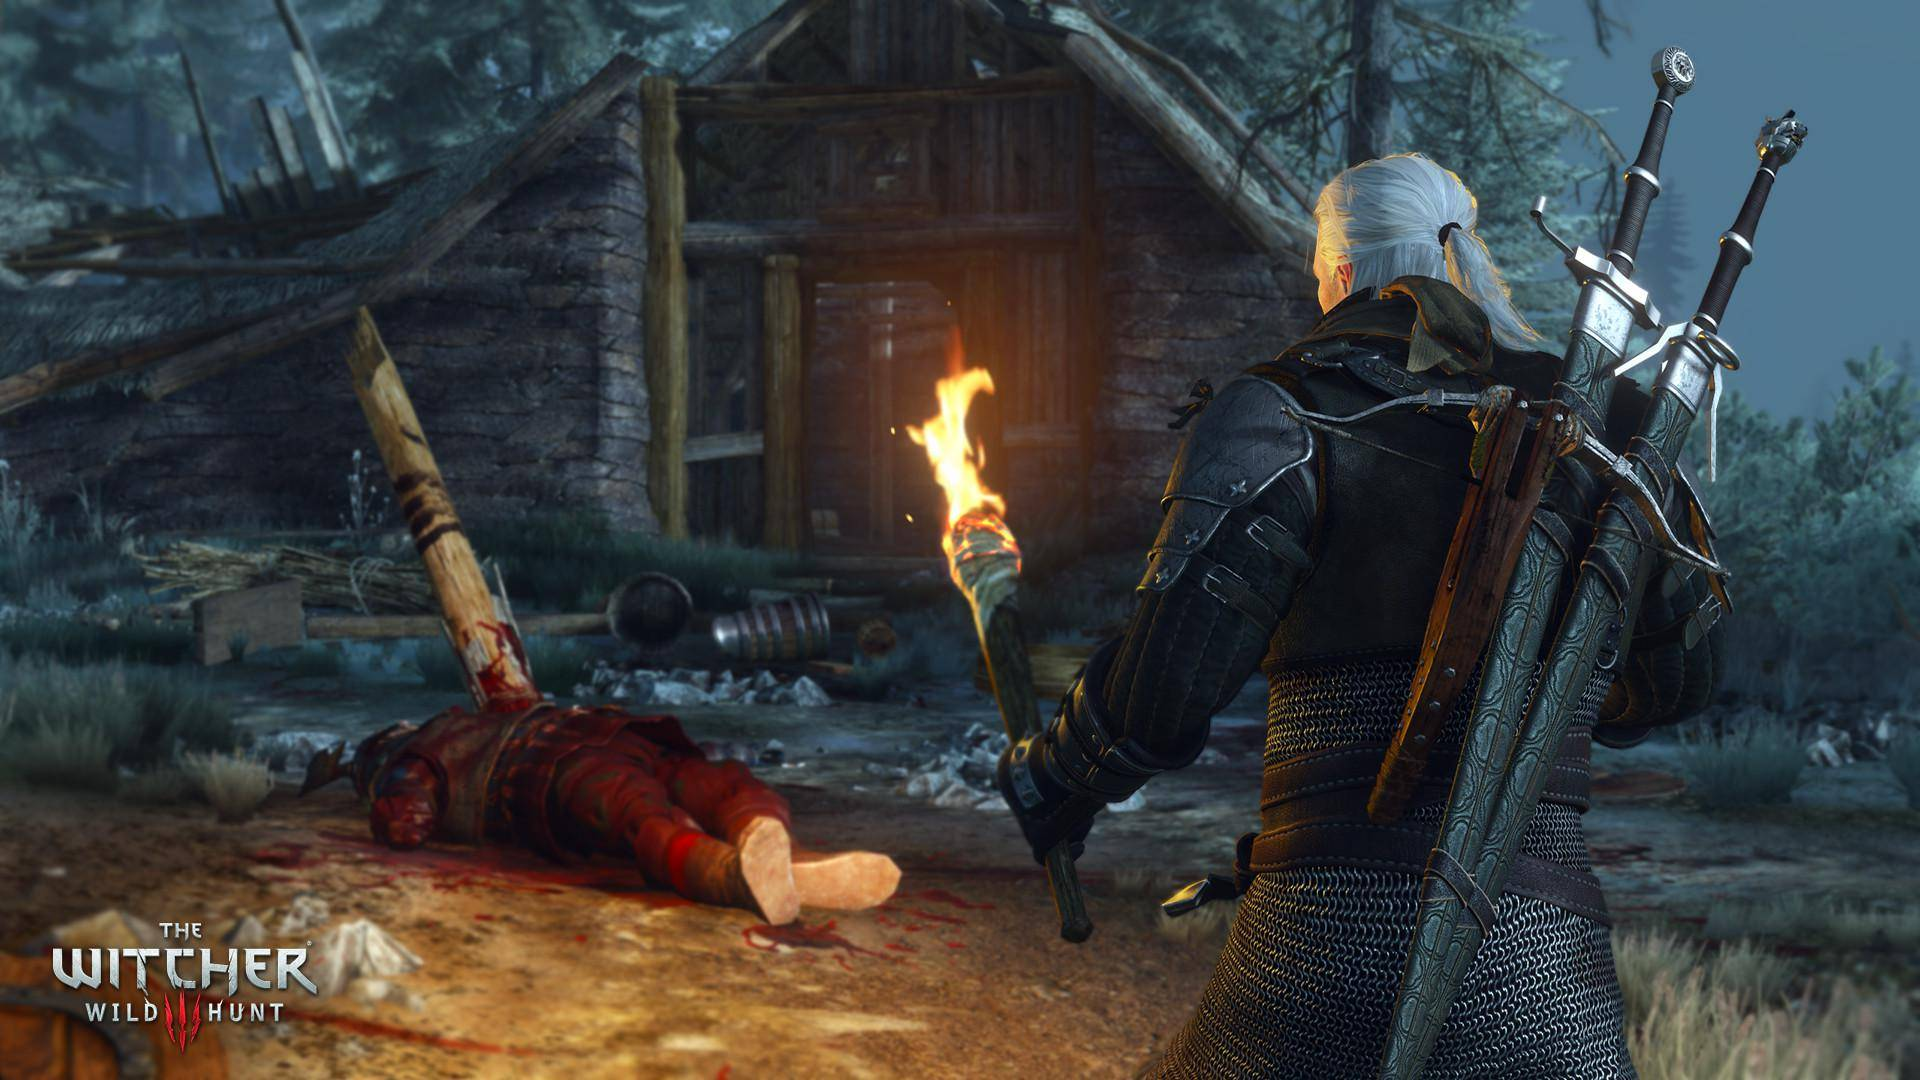 The witcher 3 pc screenshots image #17062   new game network.